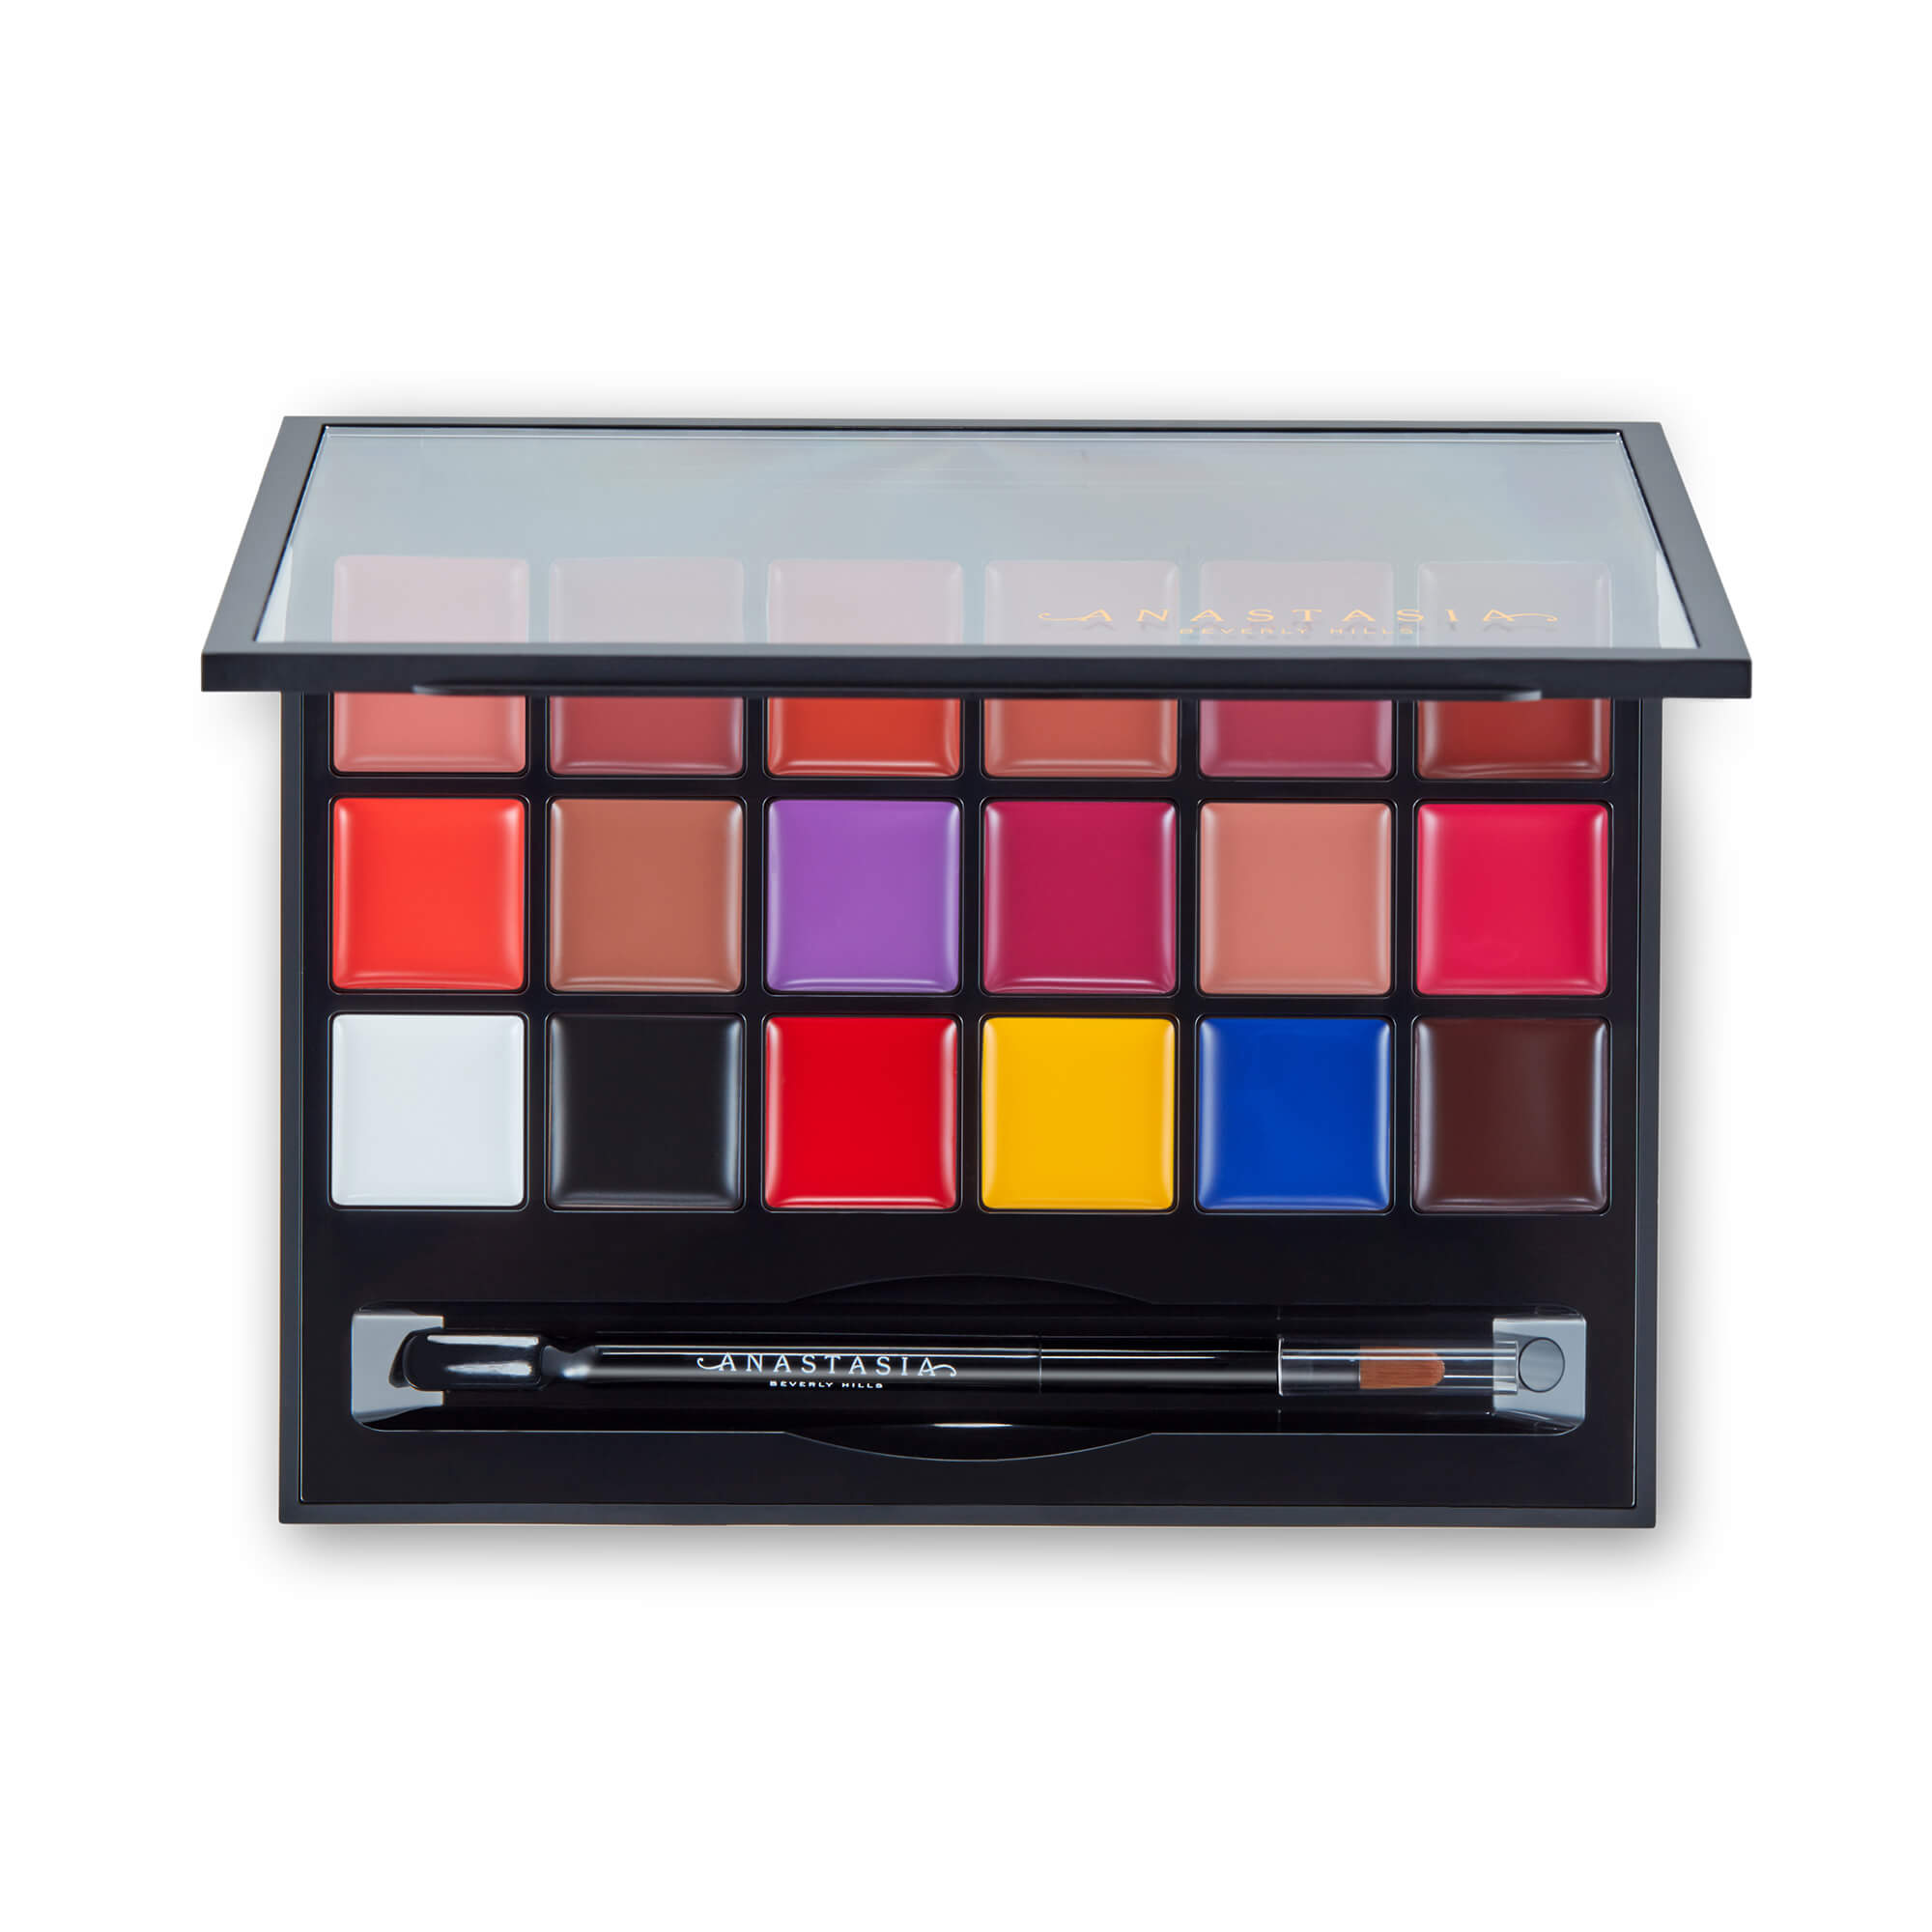 Craft master paint by number kits - Lip Palette